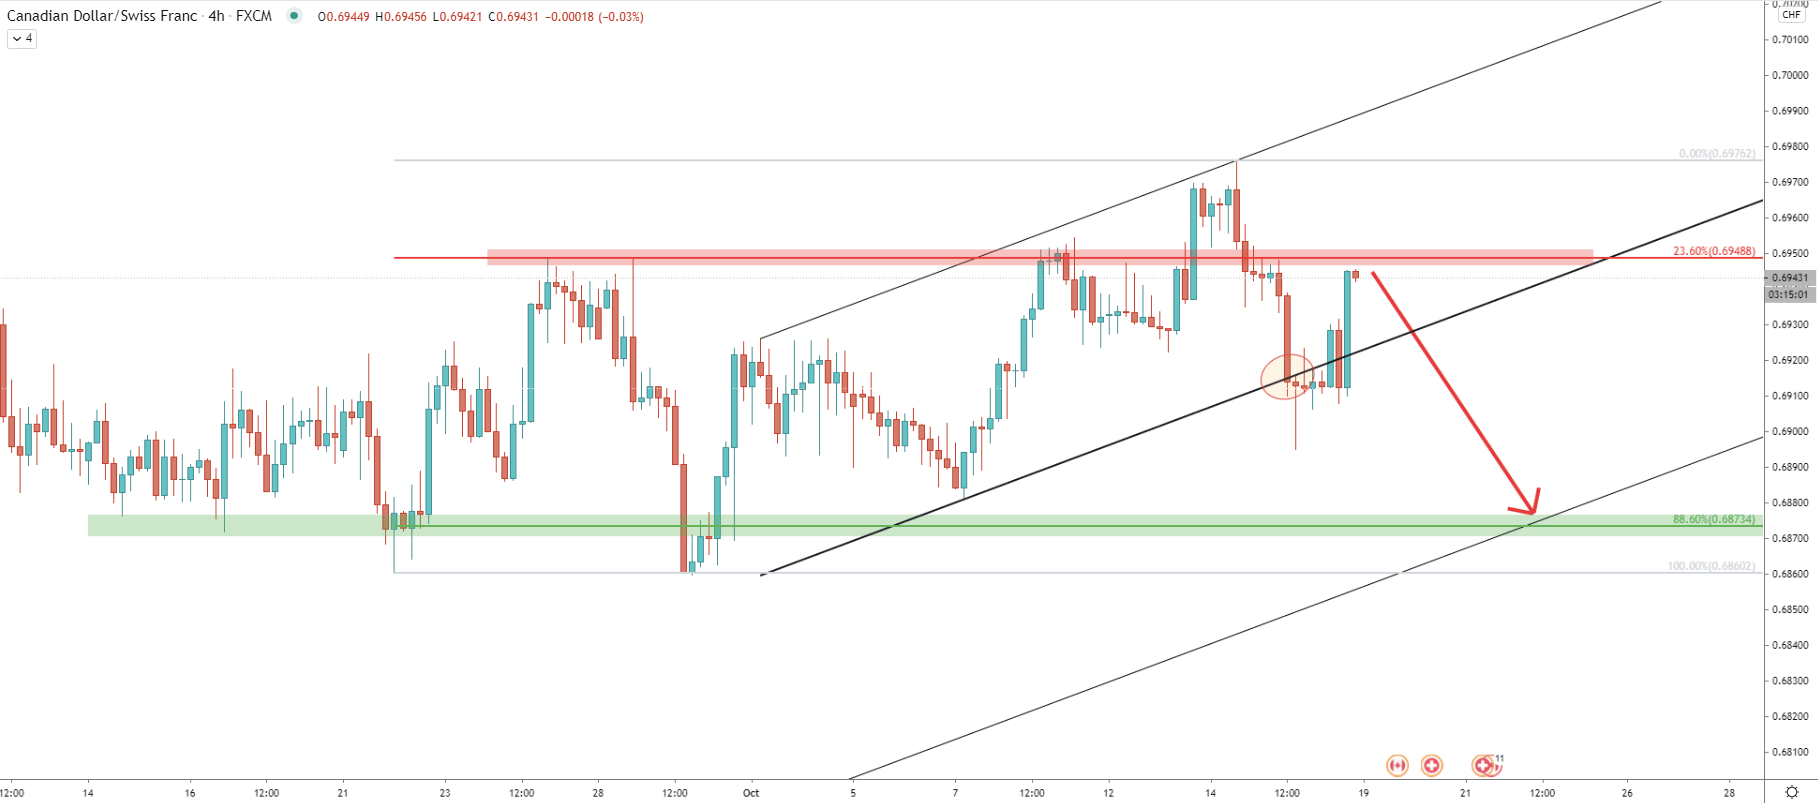 CAD/CHF 4-Hour Technical Analysis 16 Oct 2020